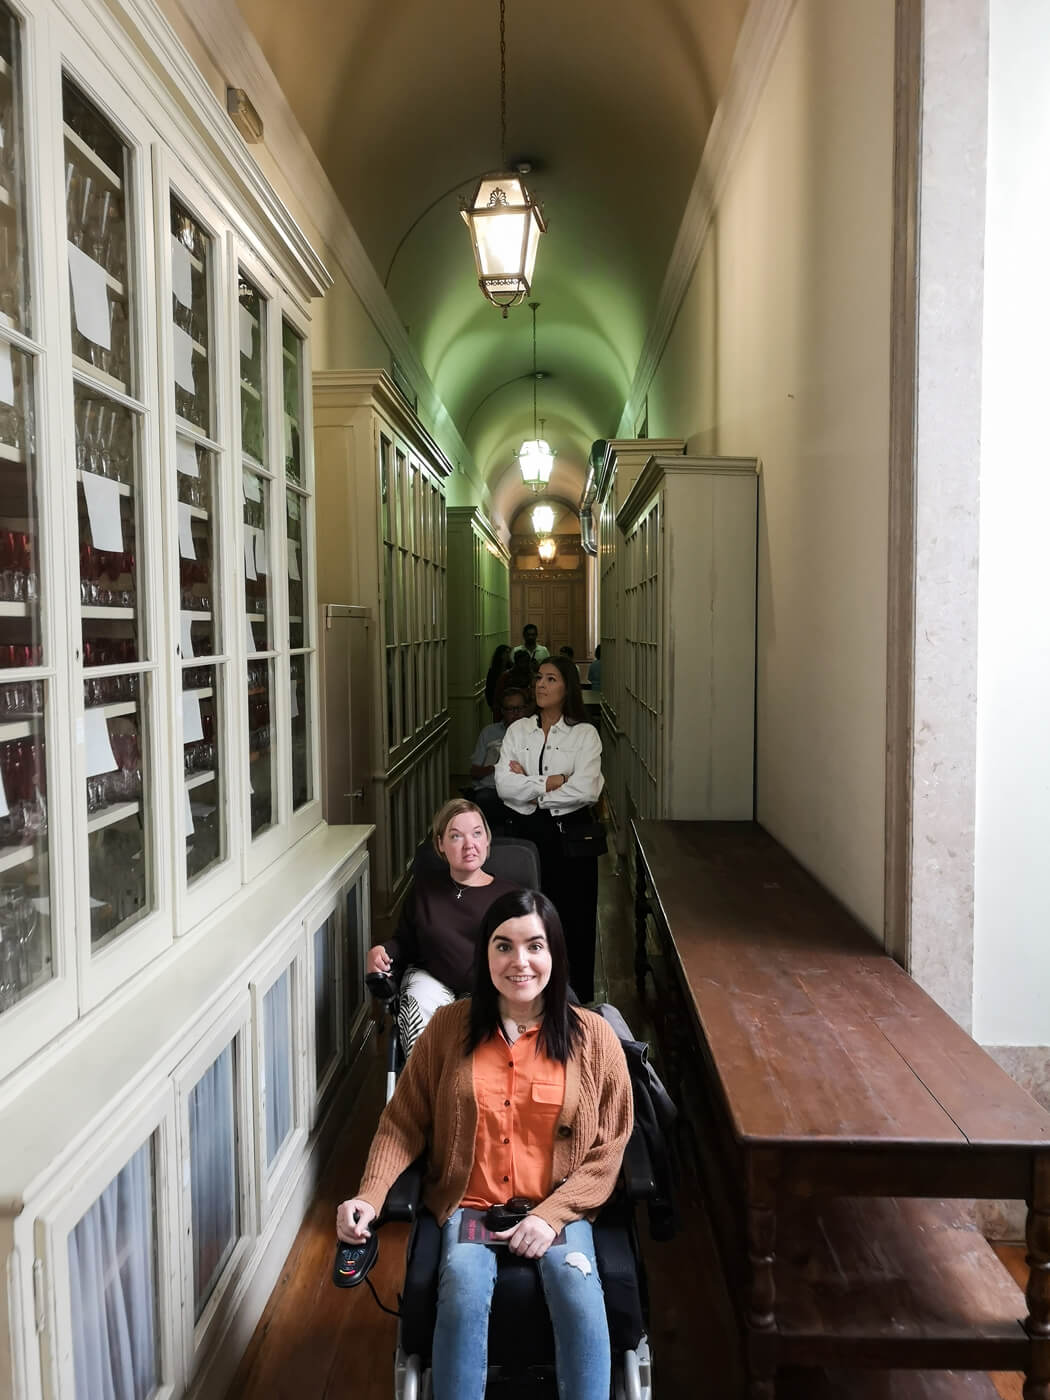 Emma and her friends who are wheelchair users driving through the kitchen porters area at the Ajuda National Palace, Portugal.